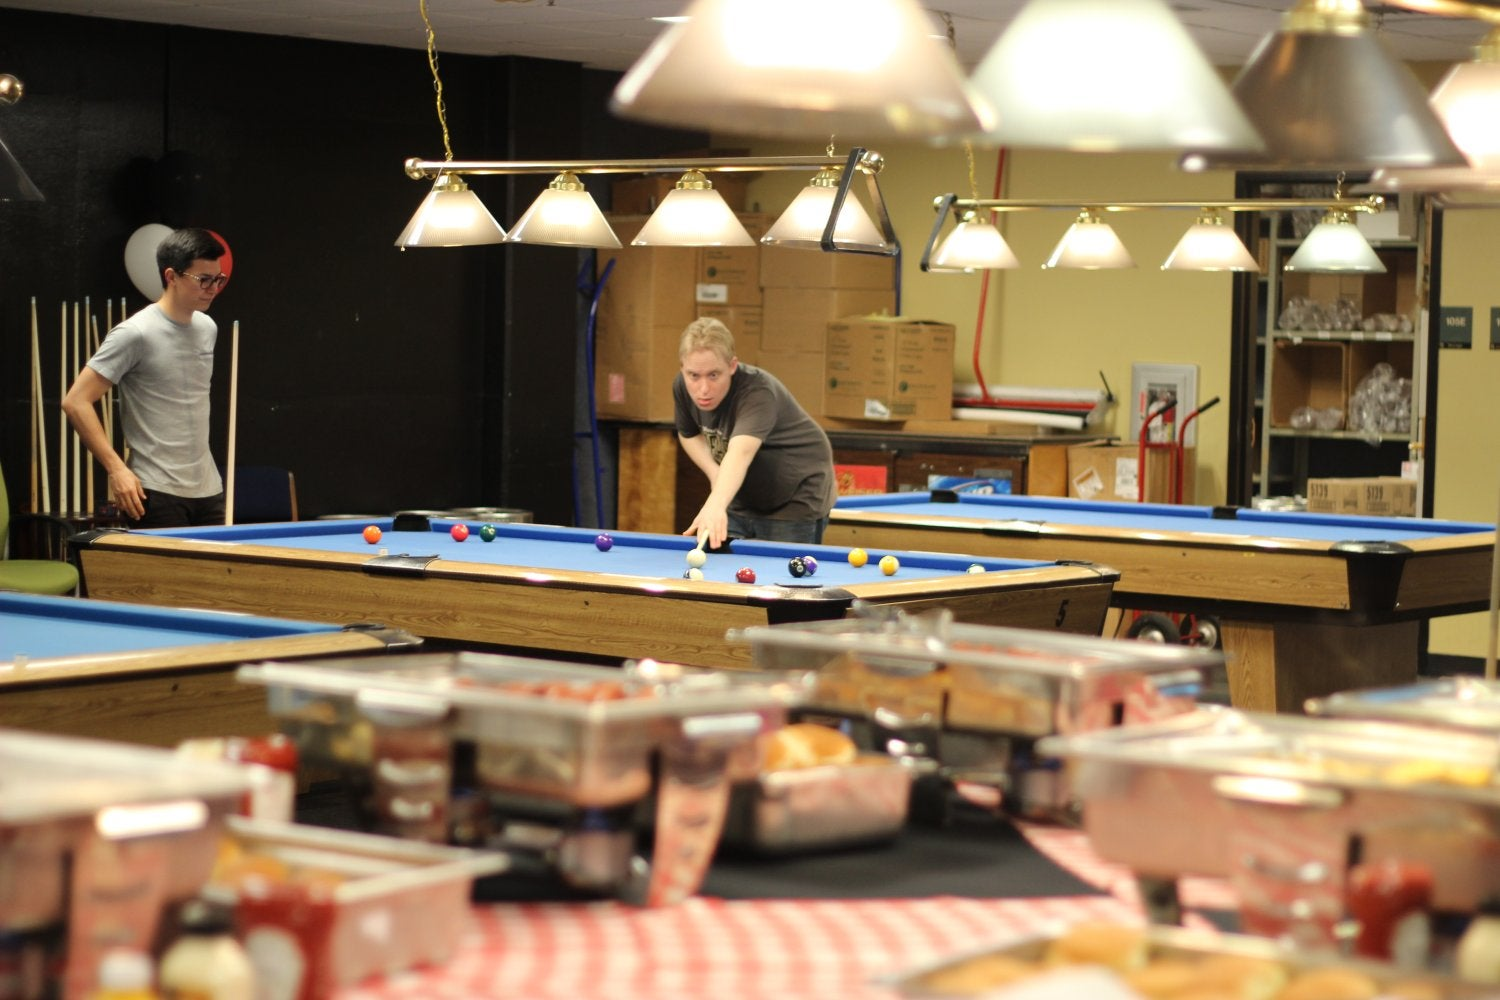 Students play pool/billiards at First Friday Buff Club